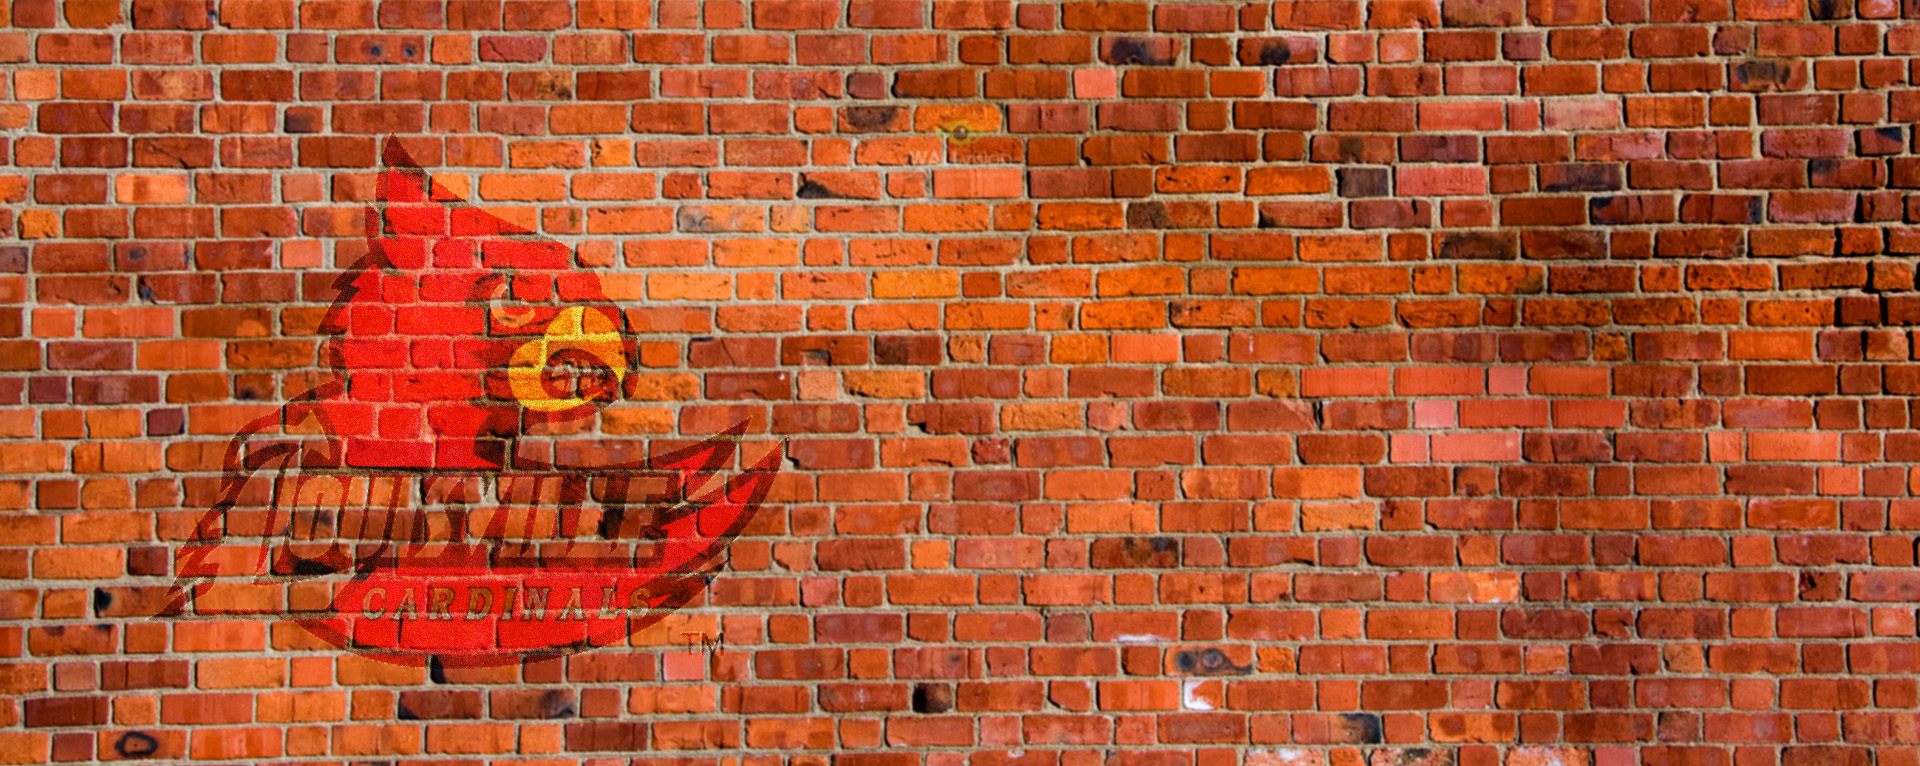 UofL logo on bricks